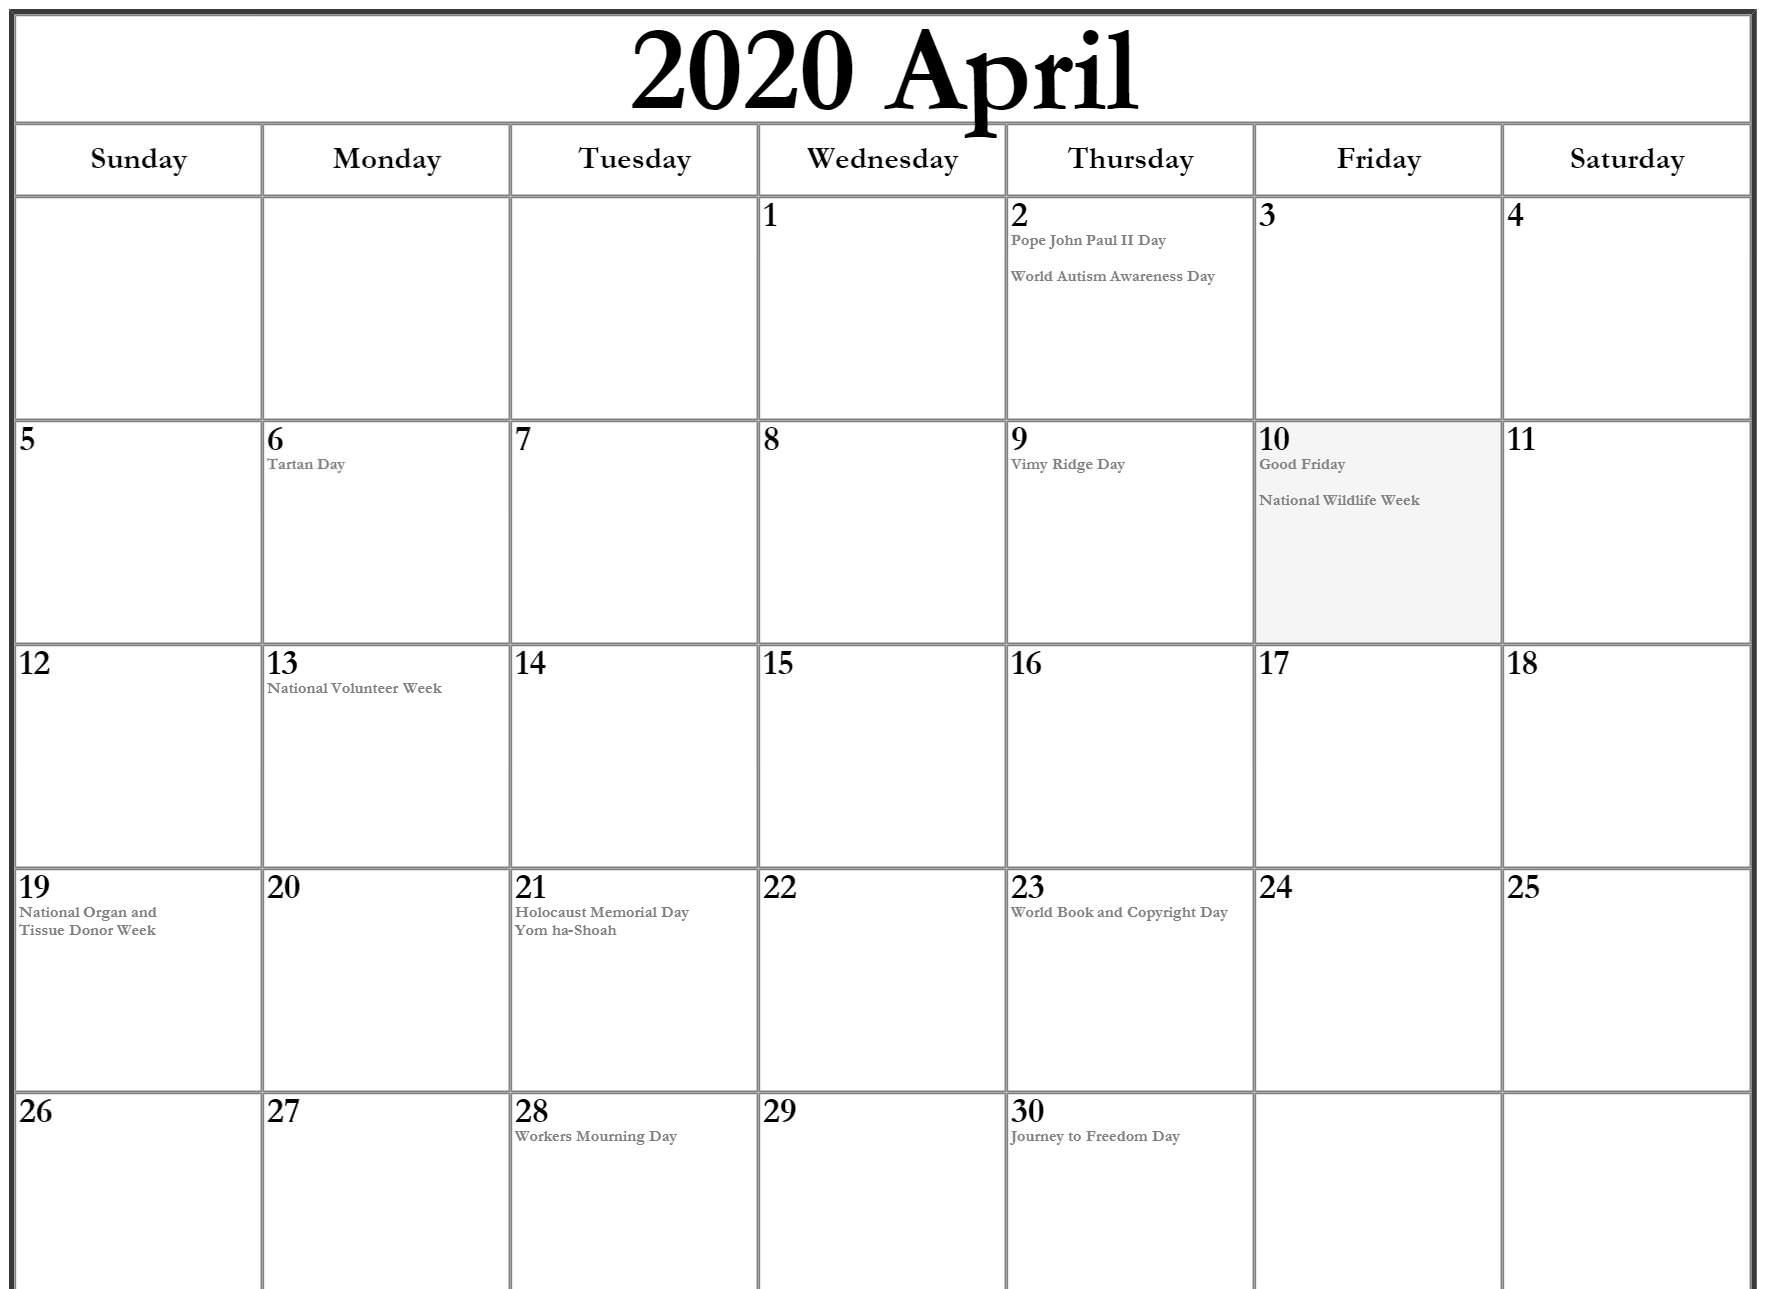 Holidays Calendar For April 2020 Templates In 2020 Holiday